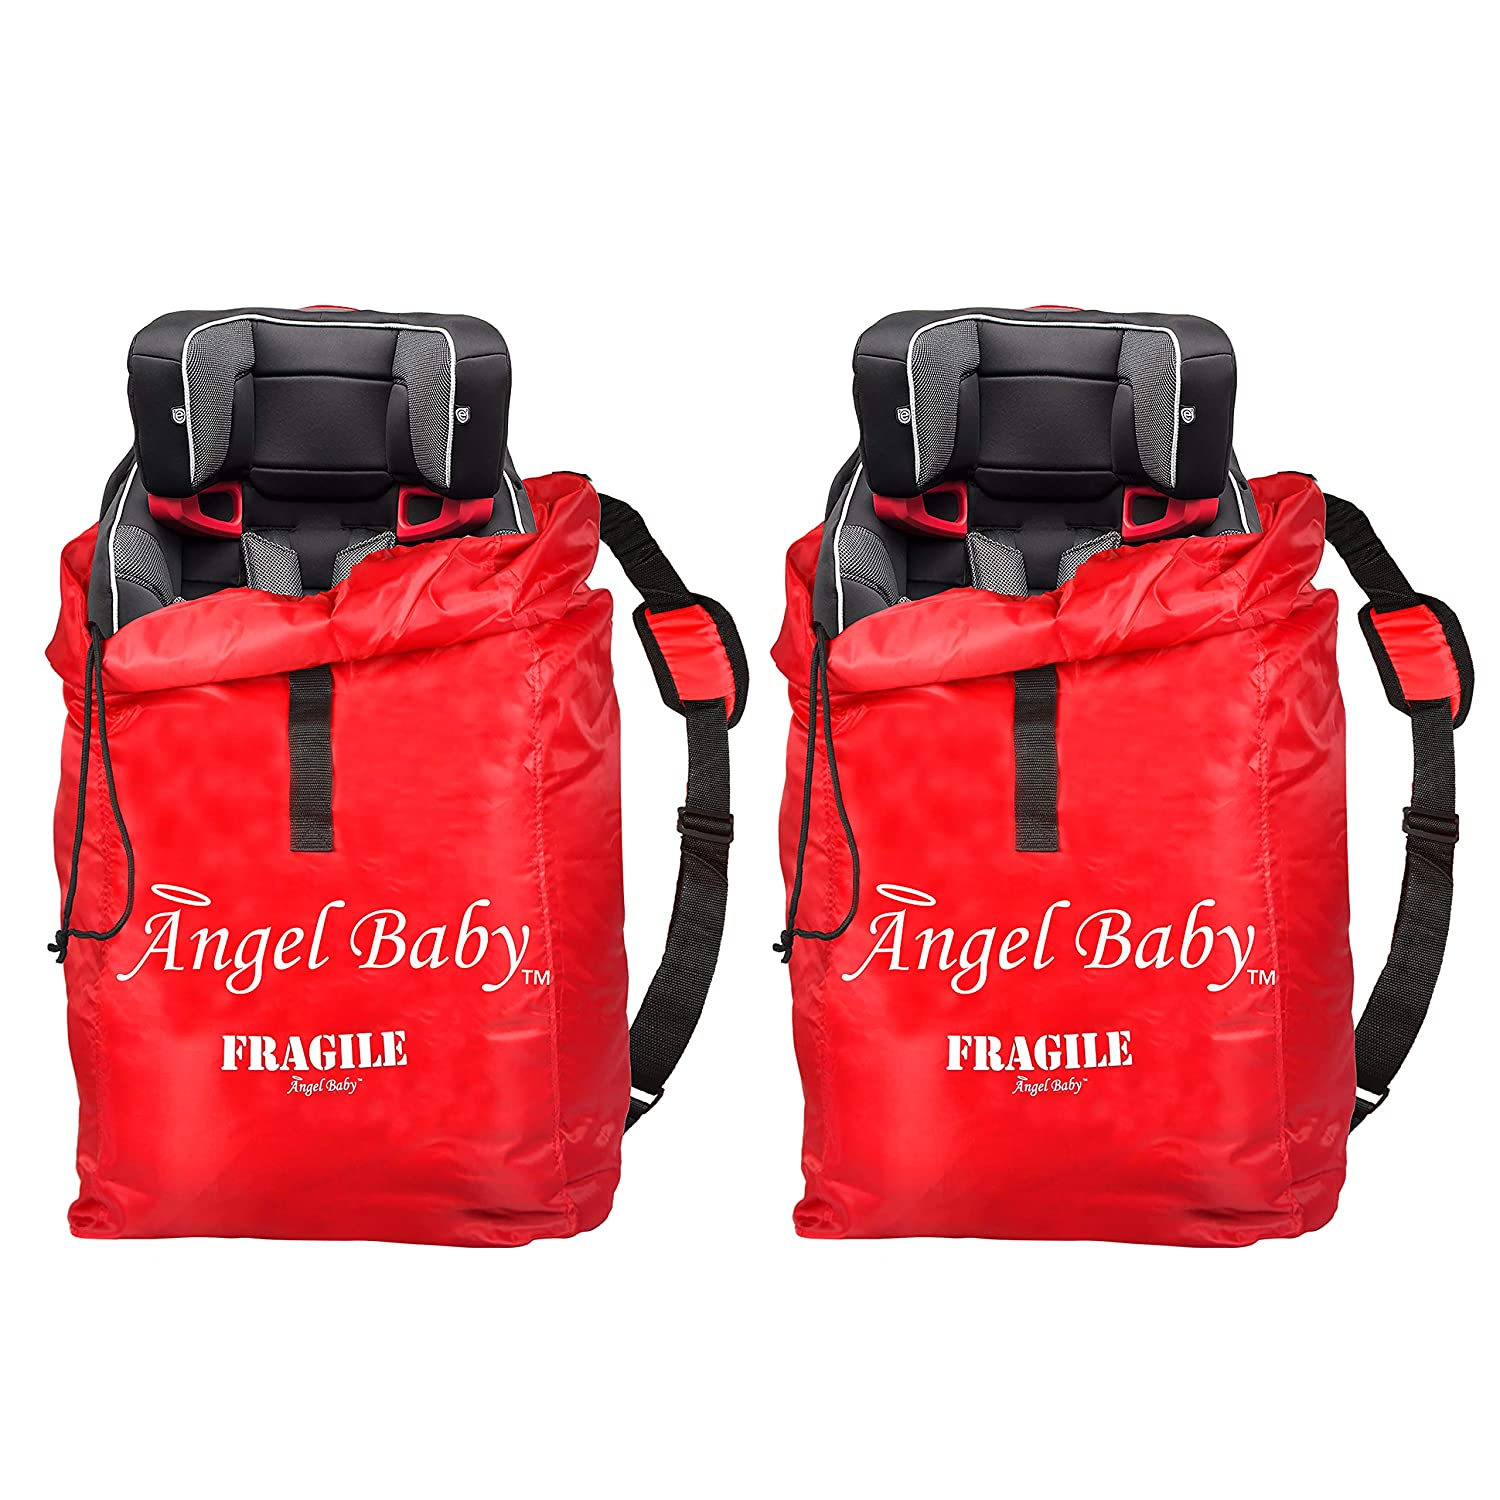 CAR SEAT Travel Bag 2 Pack - Durable Polyester with Shoulder Strap, Water Resistant, Lightweight - Great for Airport Gate Check and Storage - Fits Carseats, Booster & Infant Carriers by Angel Baby Angel Direct Products